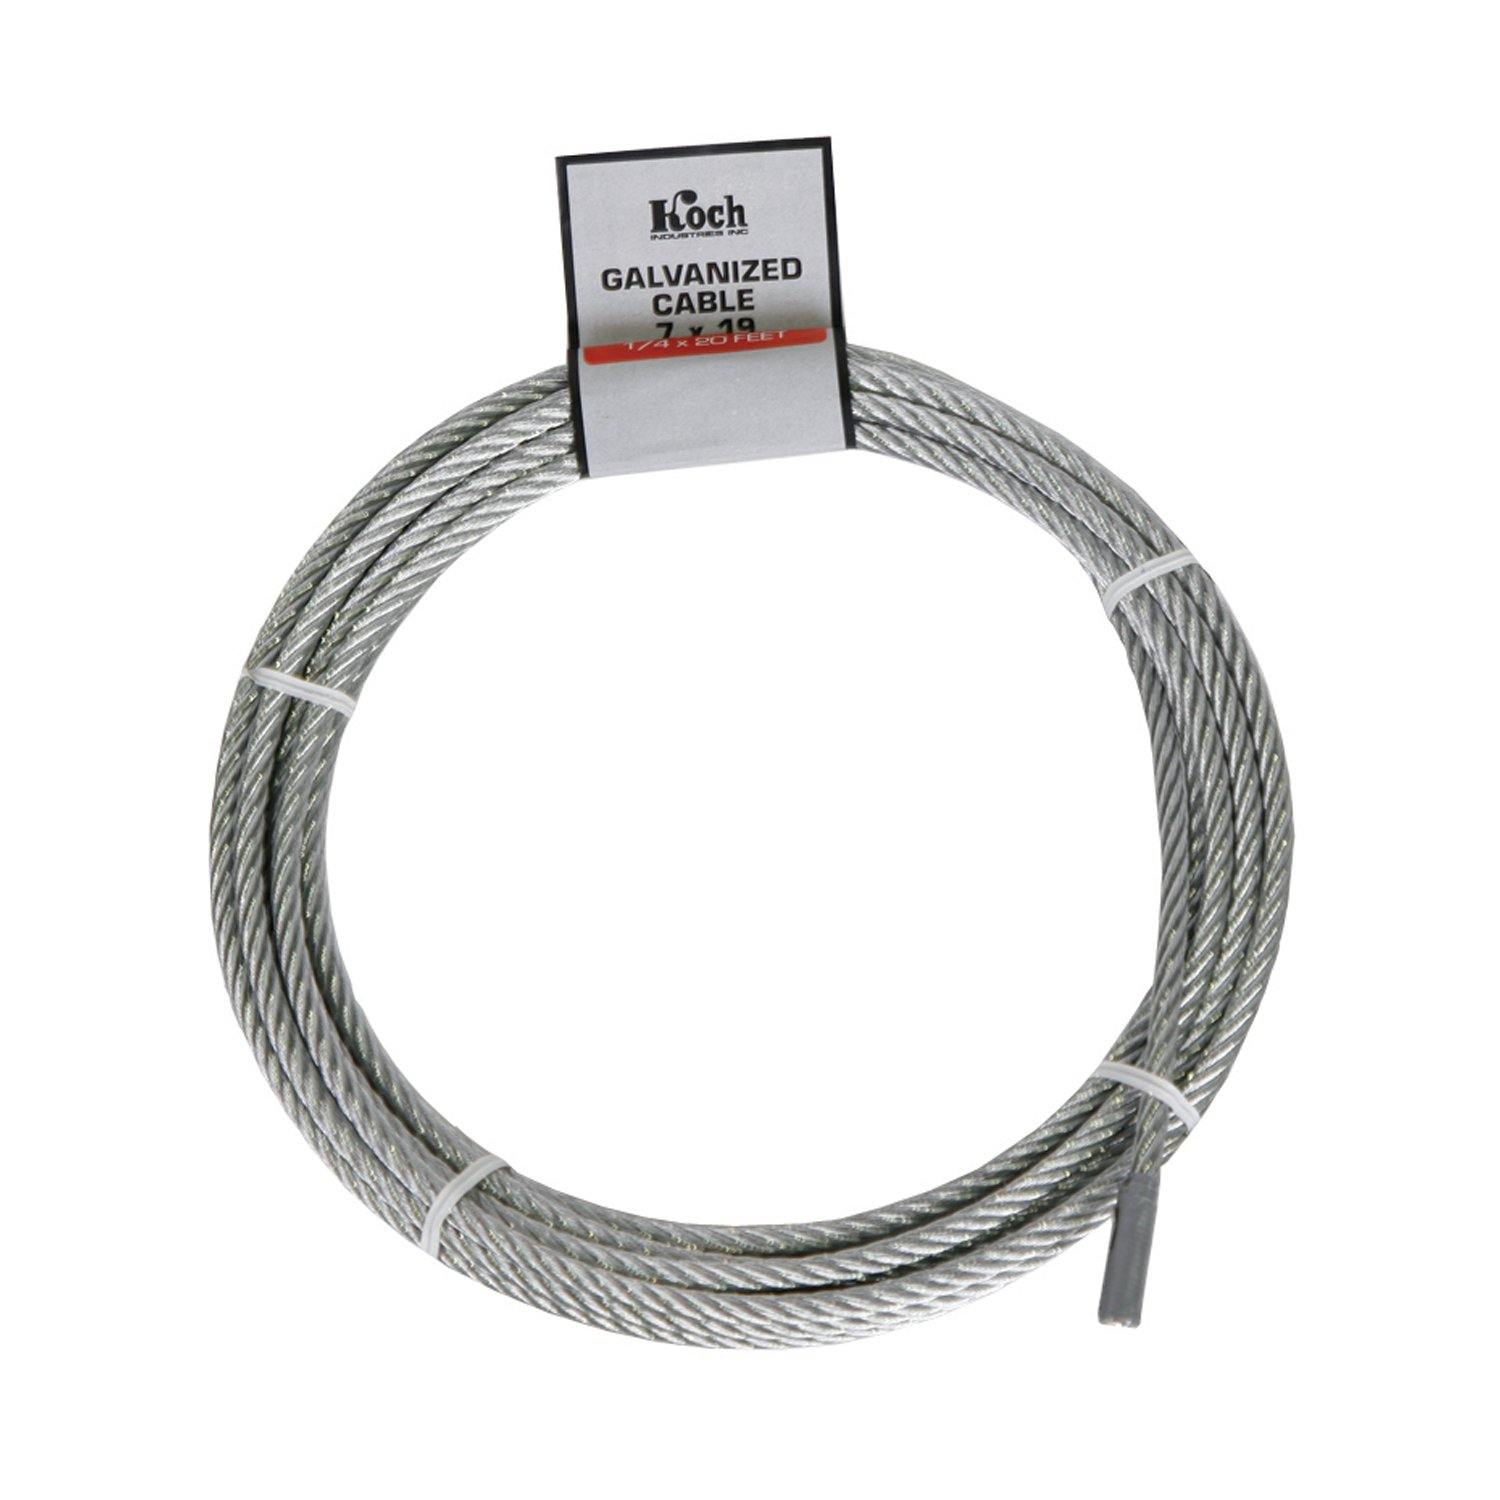 Koch A41212 7 x 19 Pre-cut Galvanized Wire Rope Cable 1/4-Inch by 20-Feet, Coil